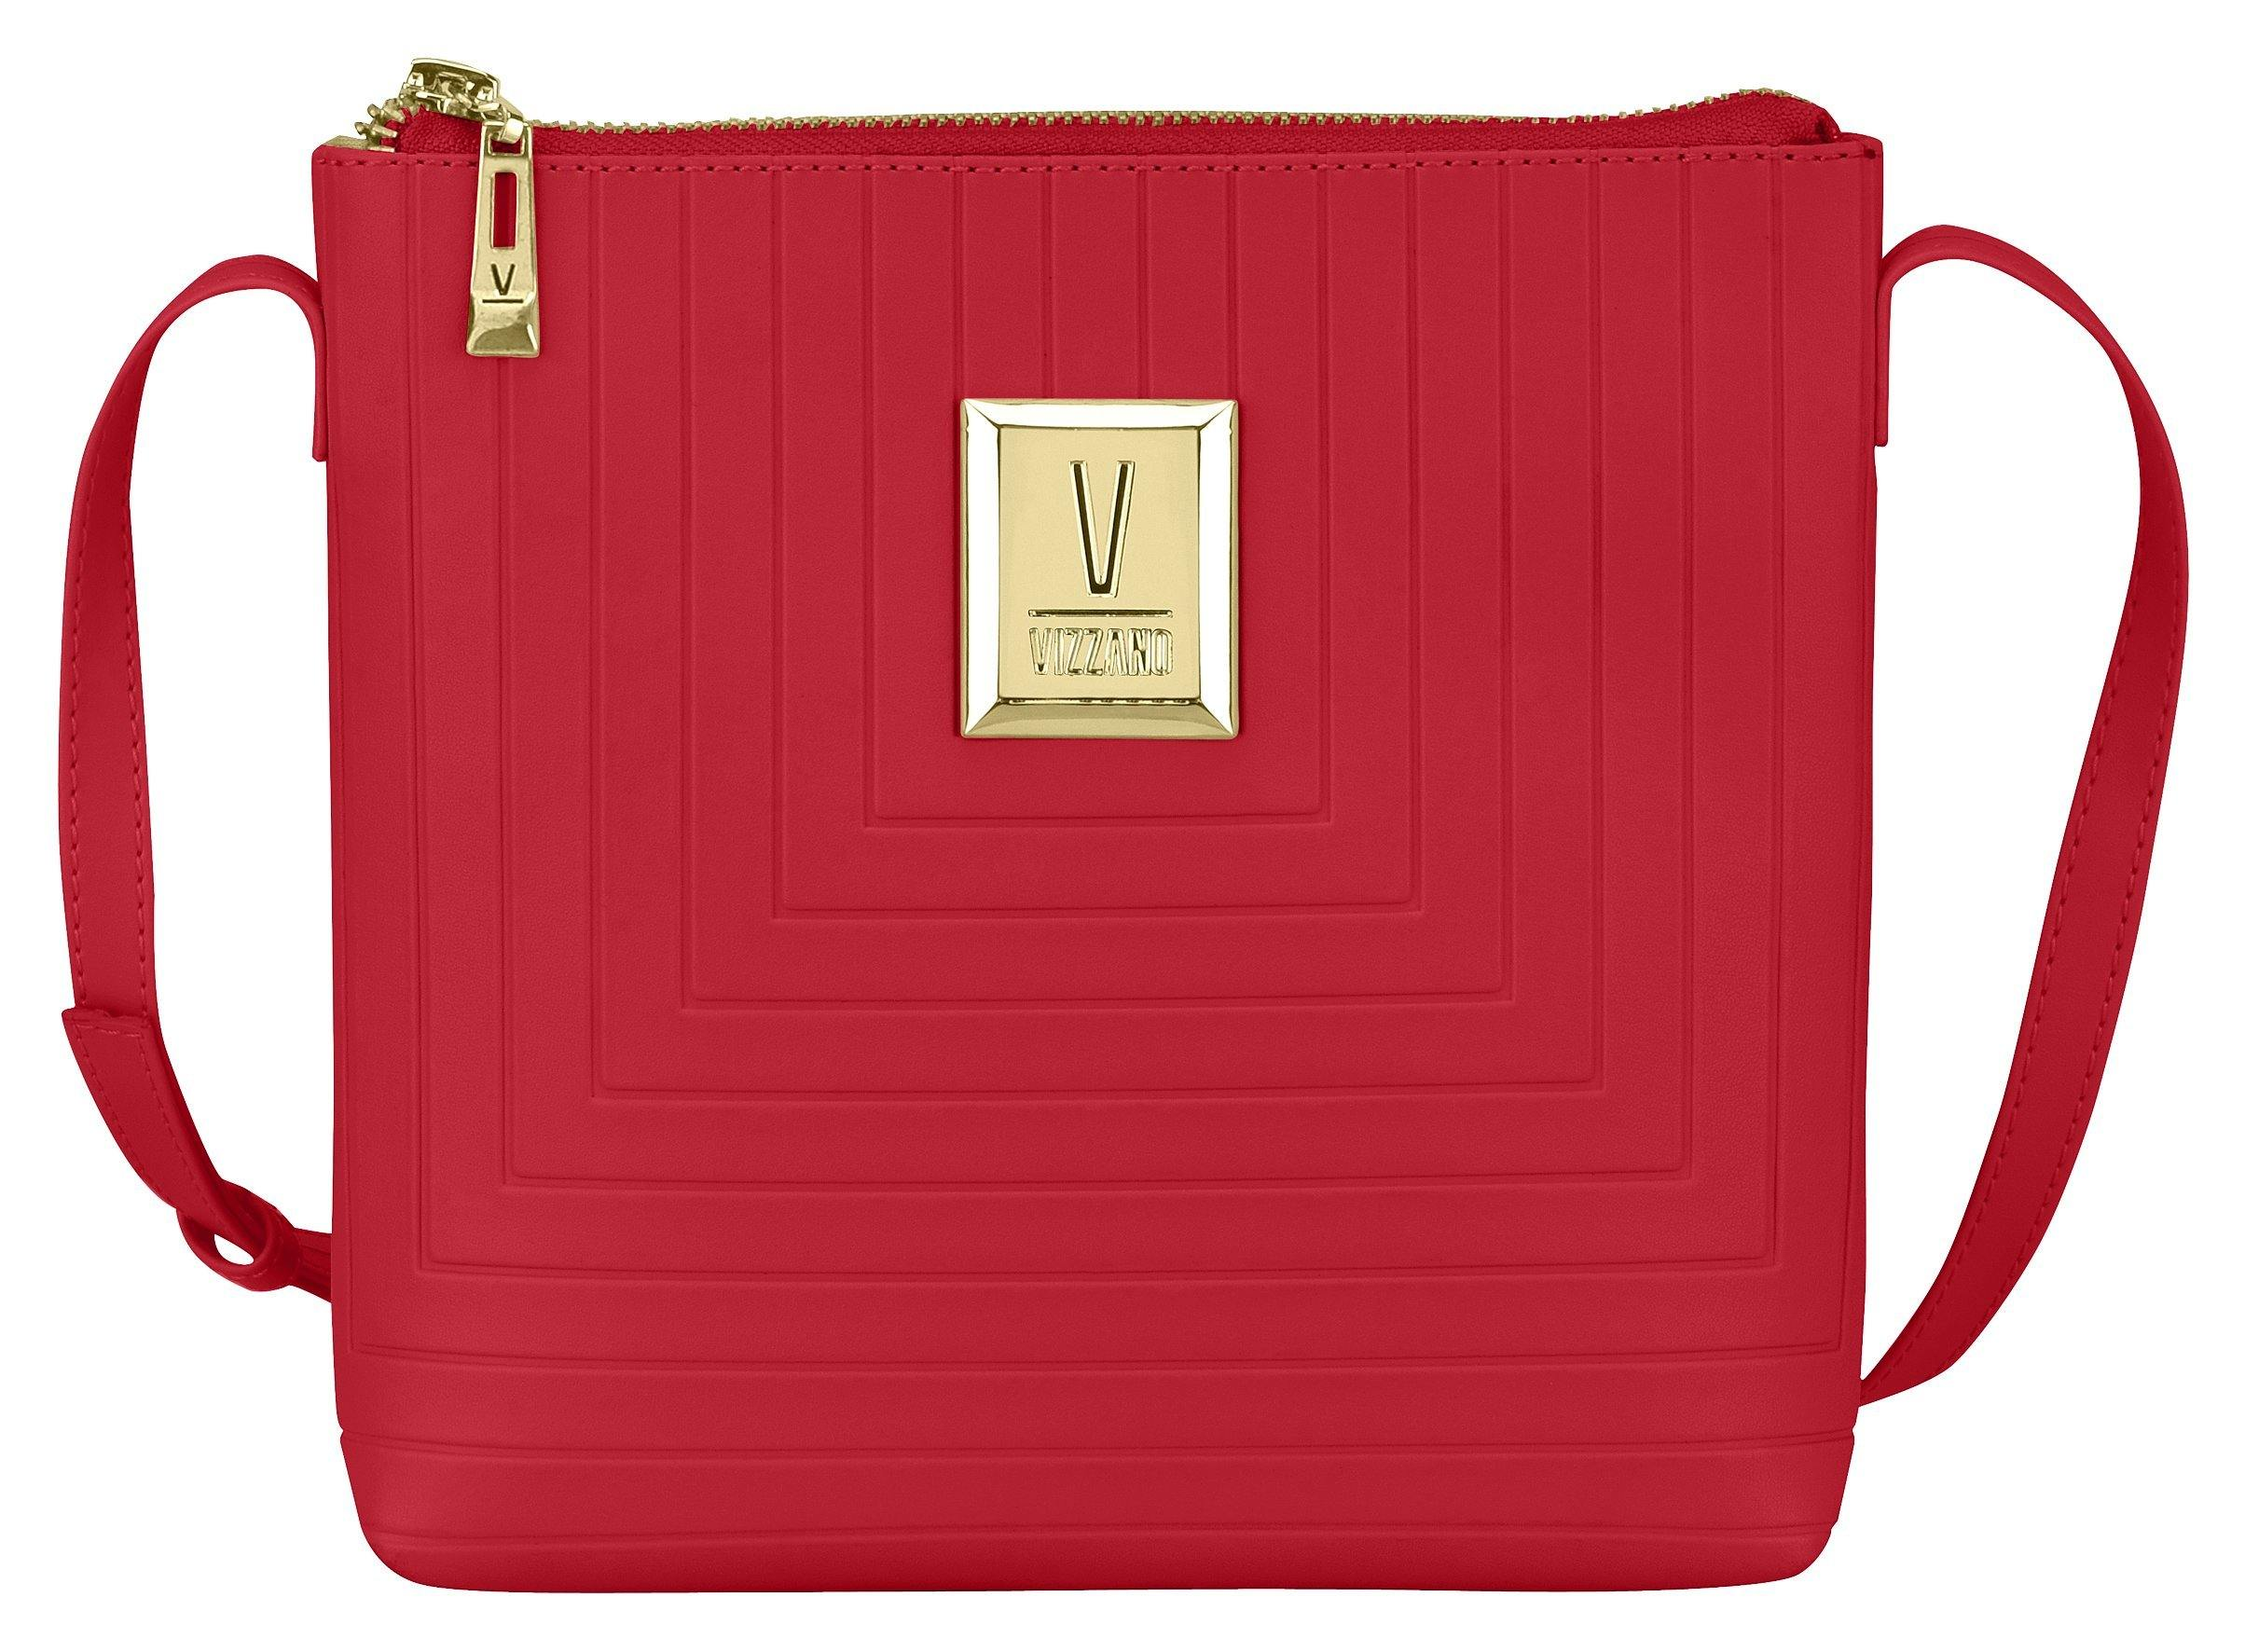 Vizzano 10000-1 Cross Body Bag in Red